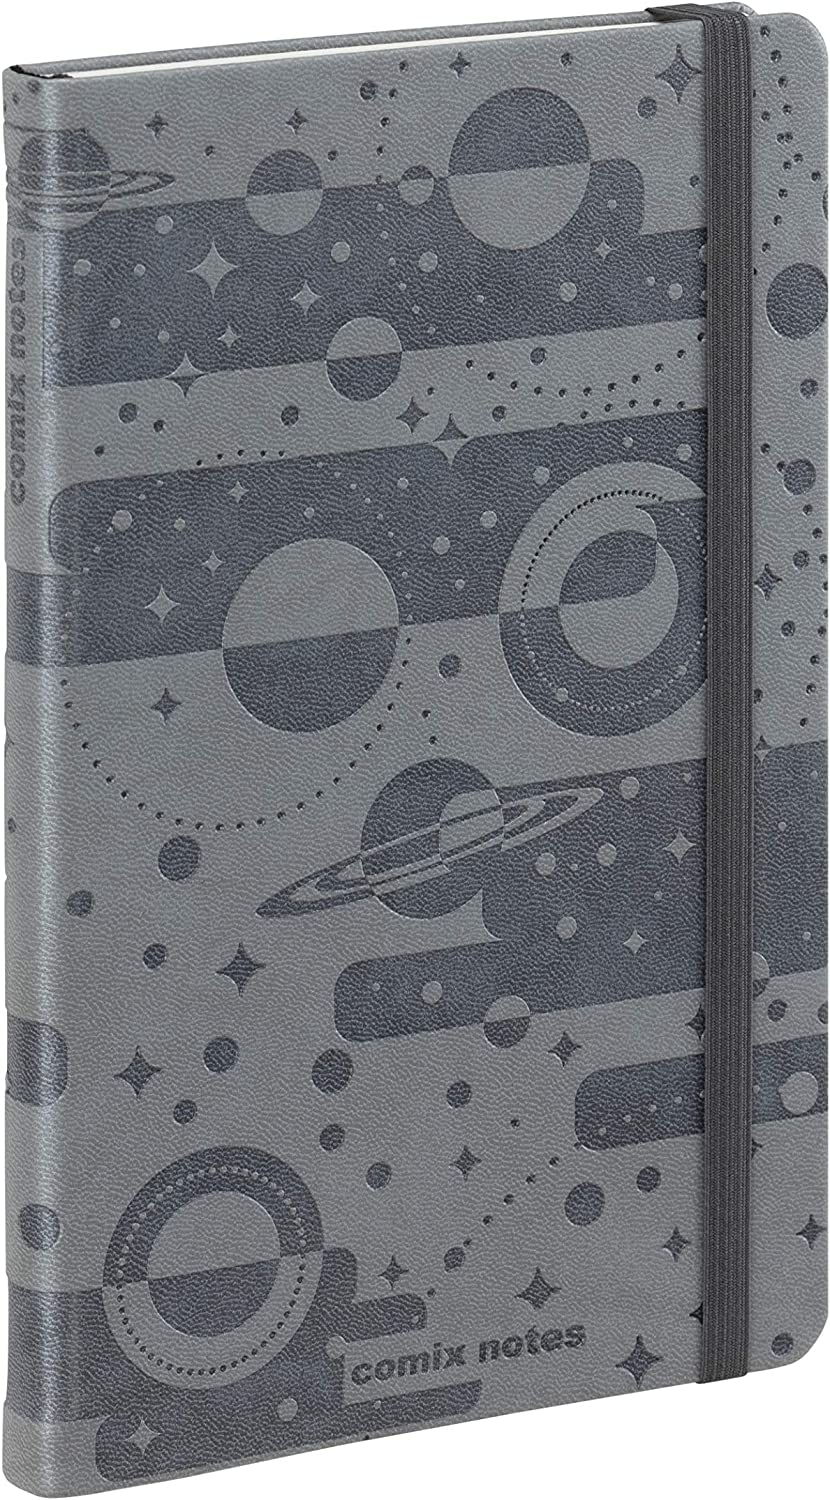 NOTES COMIX SPECIAL LARGE GRIGIO ARGENTO PAGINE BIANCHE